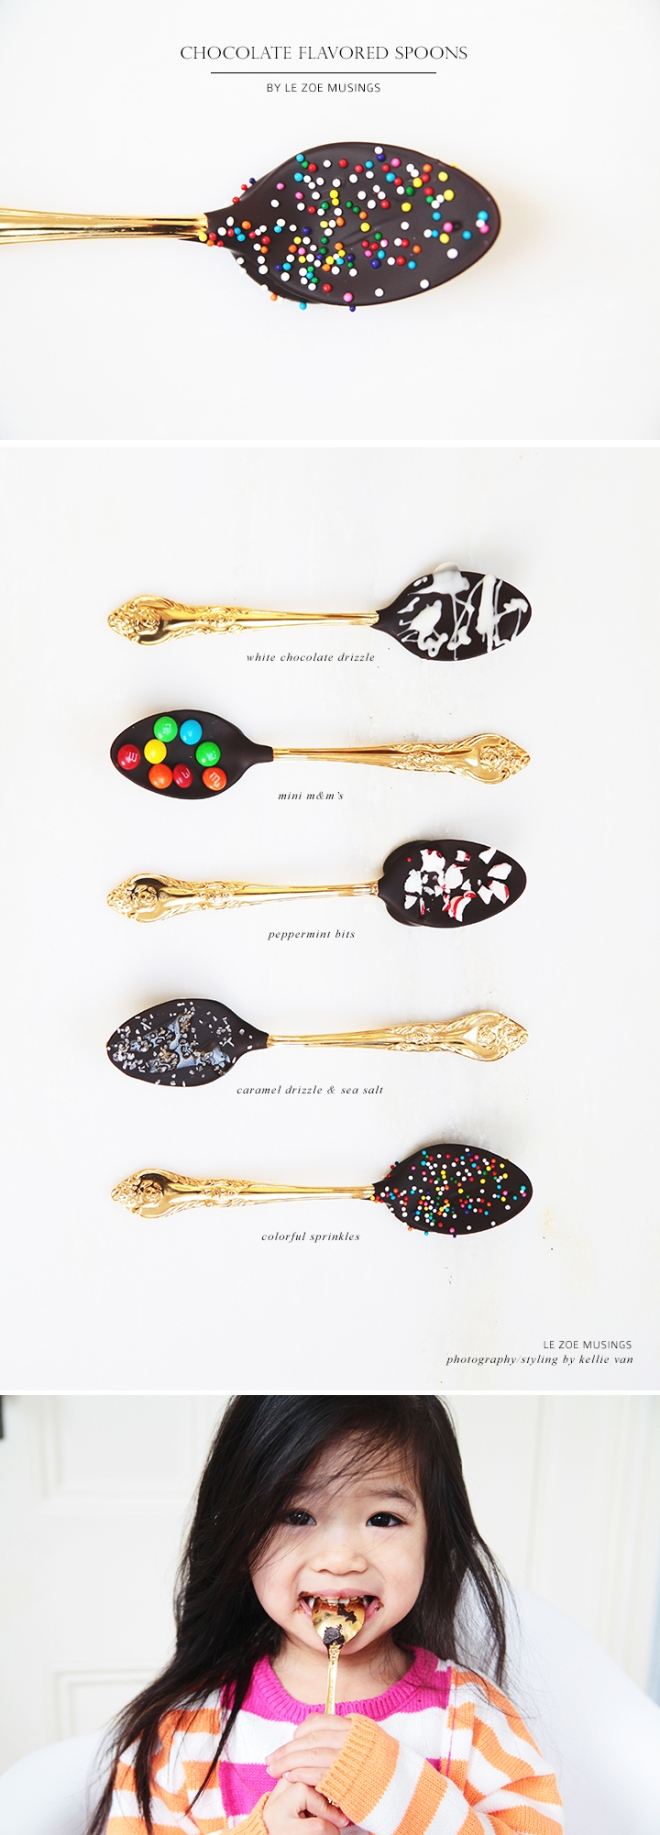 Chocolate Flavored Spoon by Le Zoe Musings_2